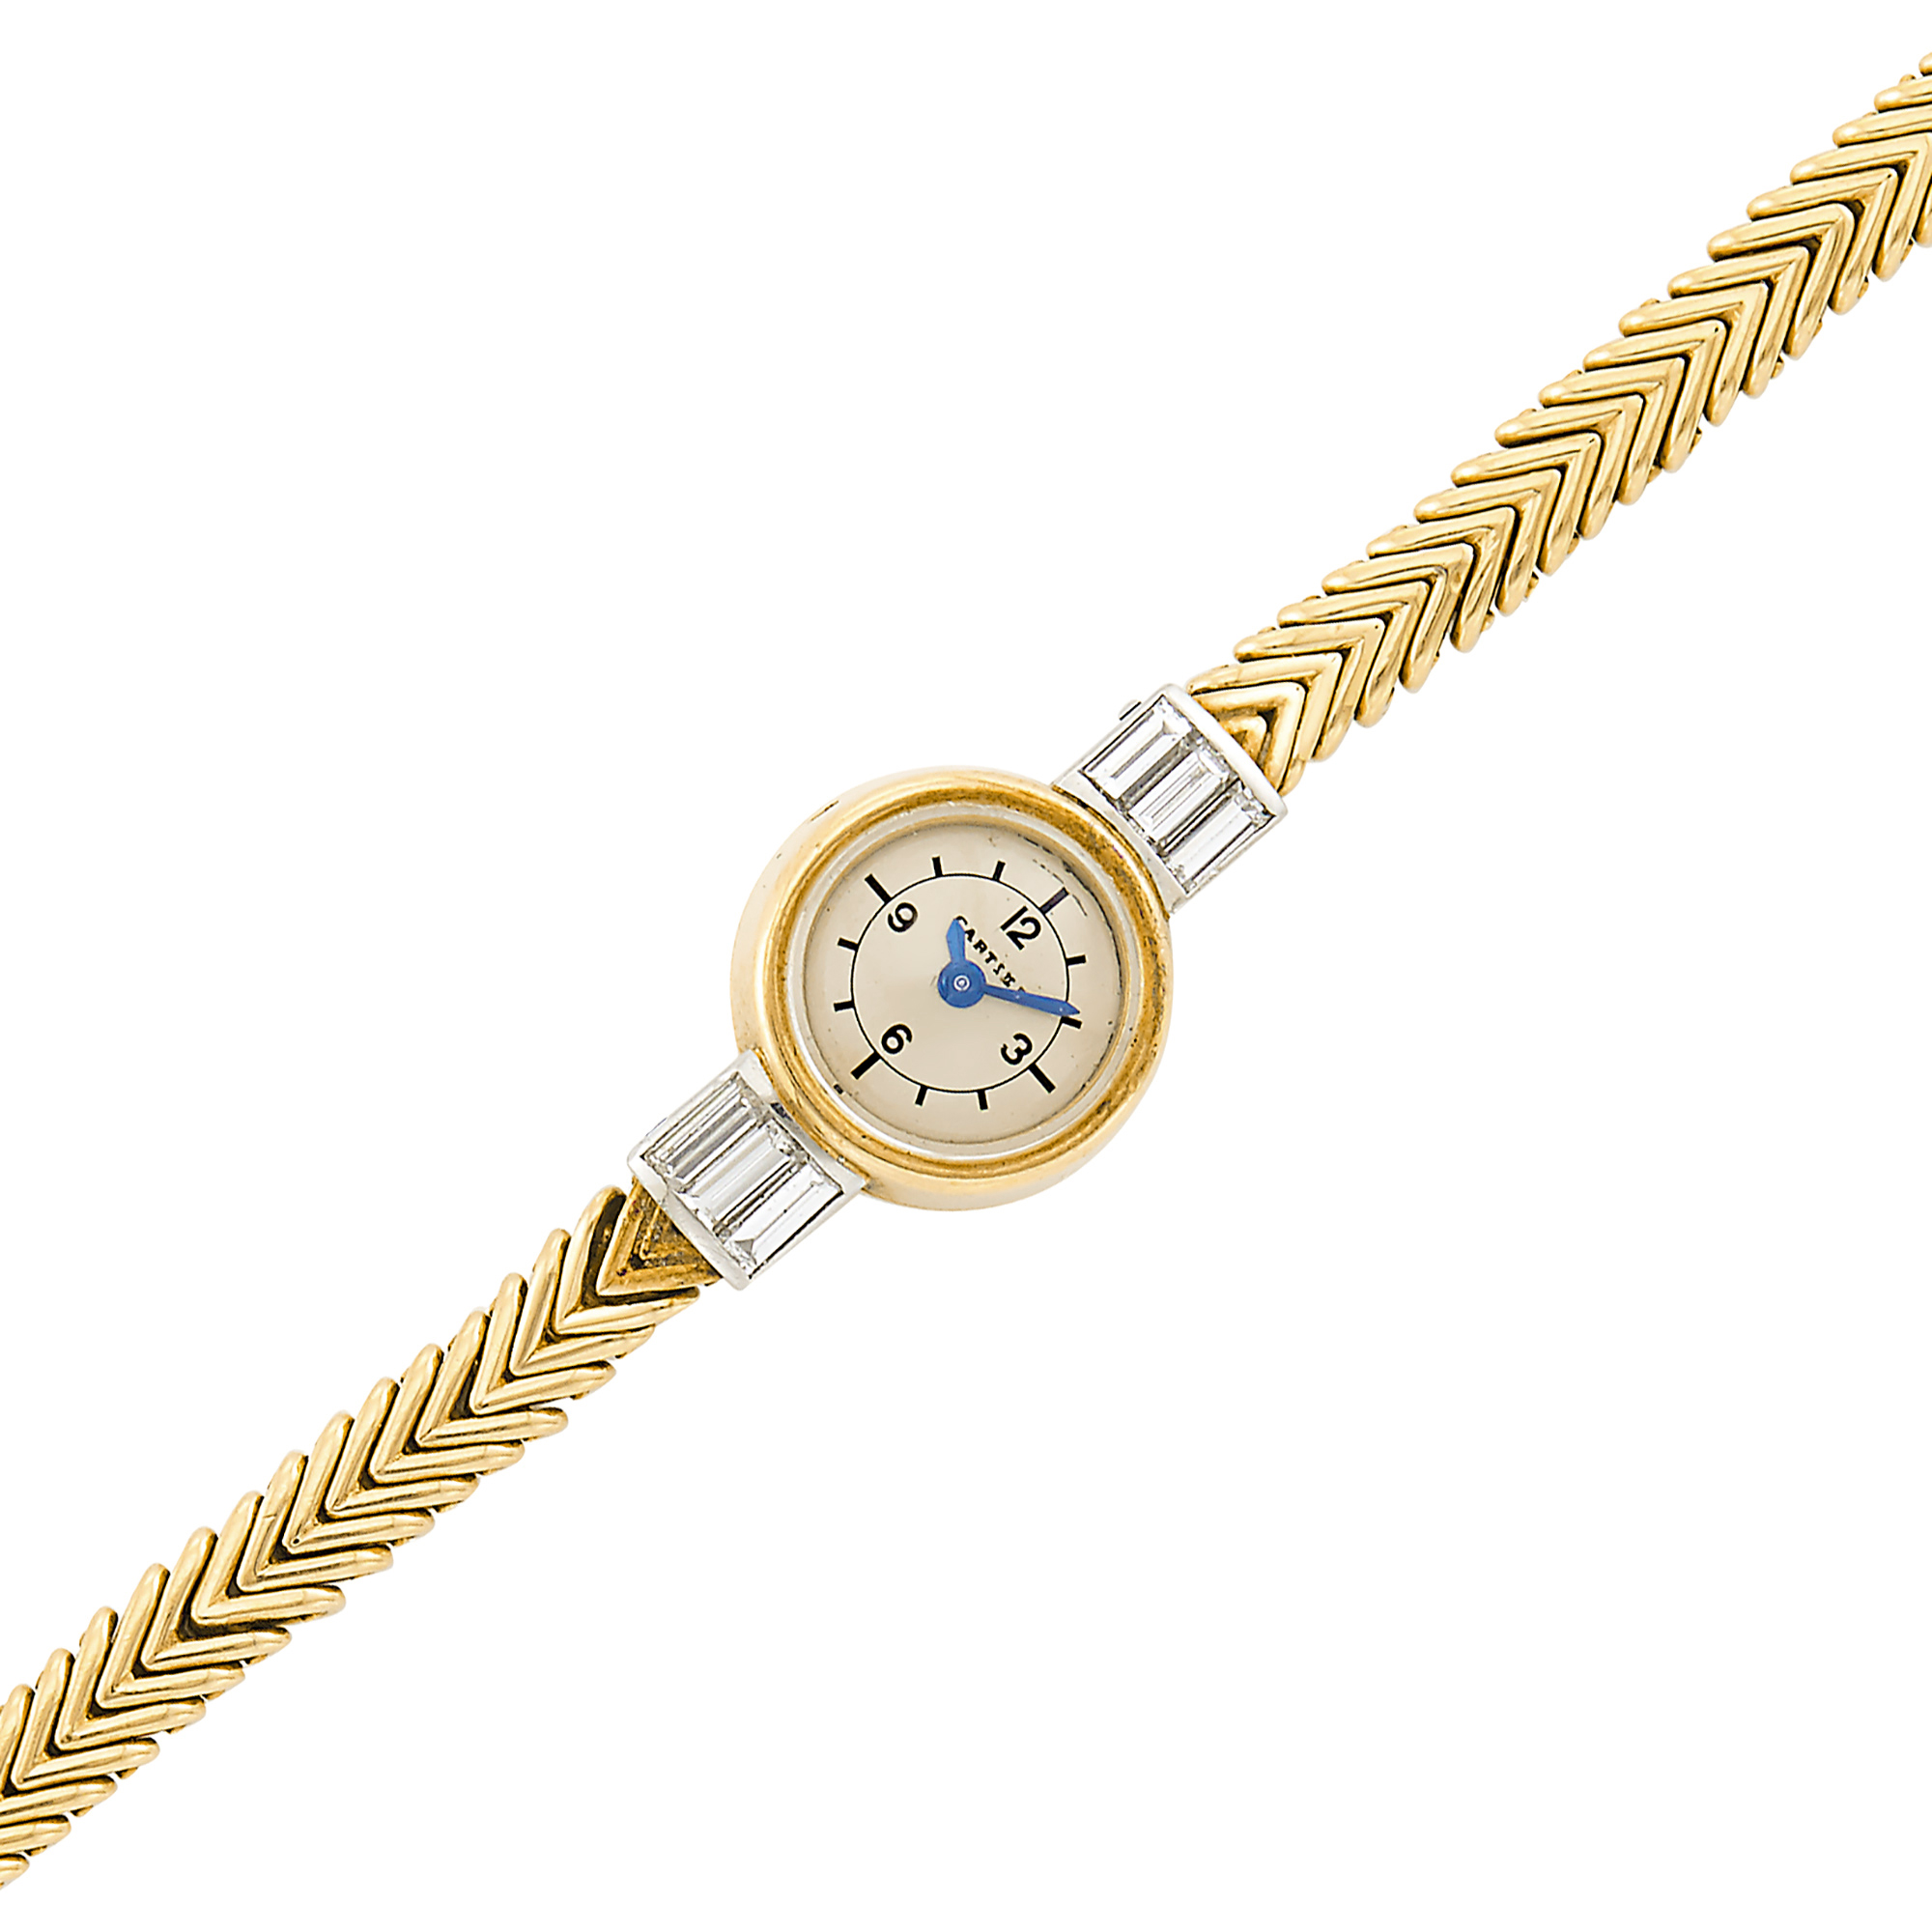 Lot image - Gold, Platinum and Diamond Herringbone Link Wristwatch, Cartier, France